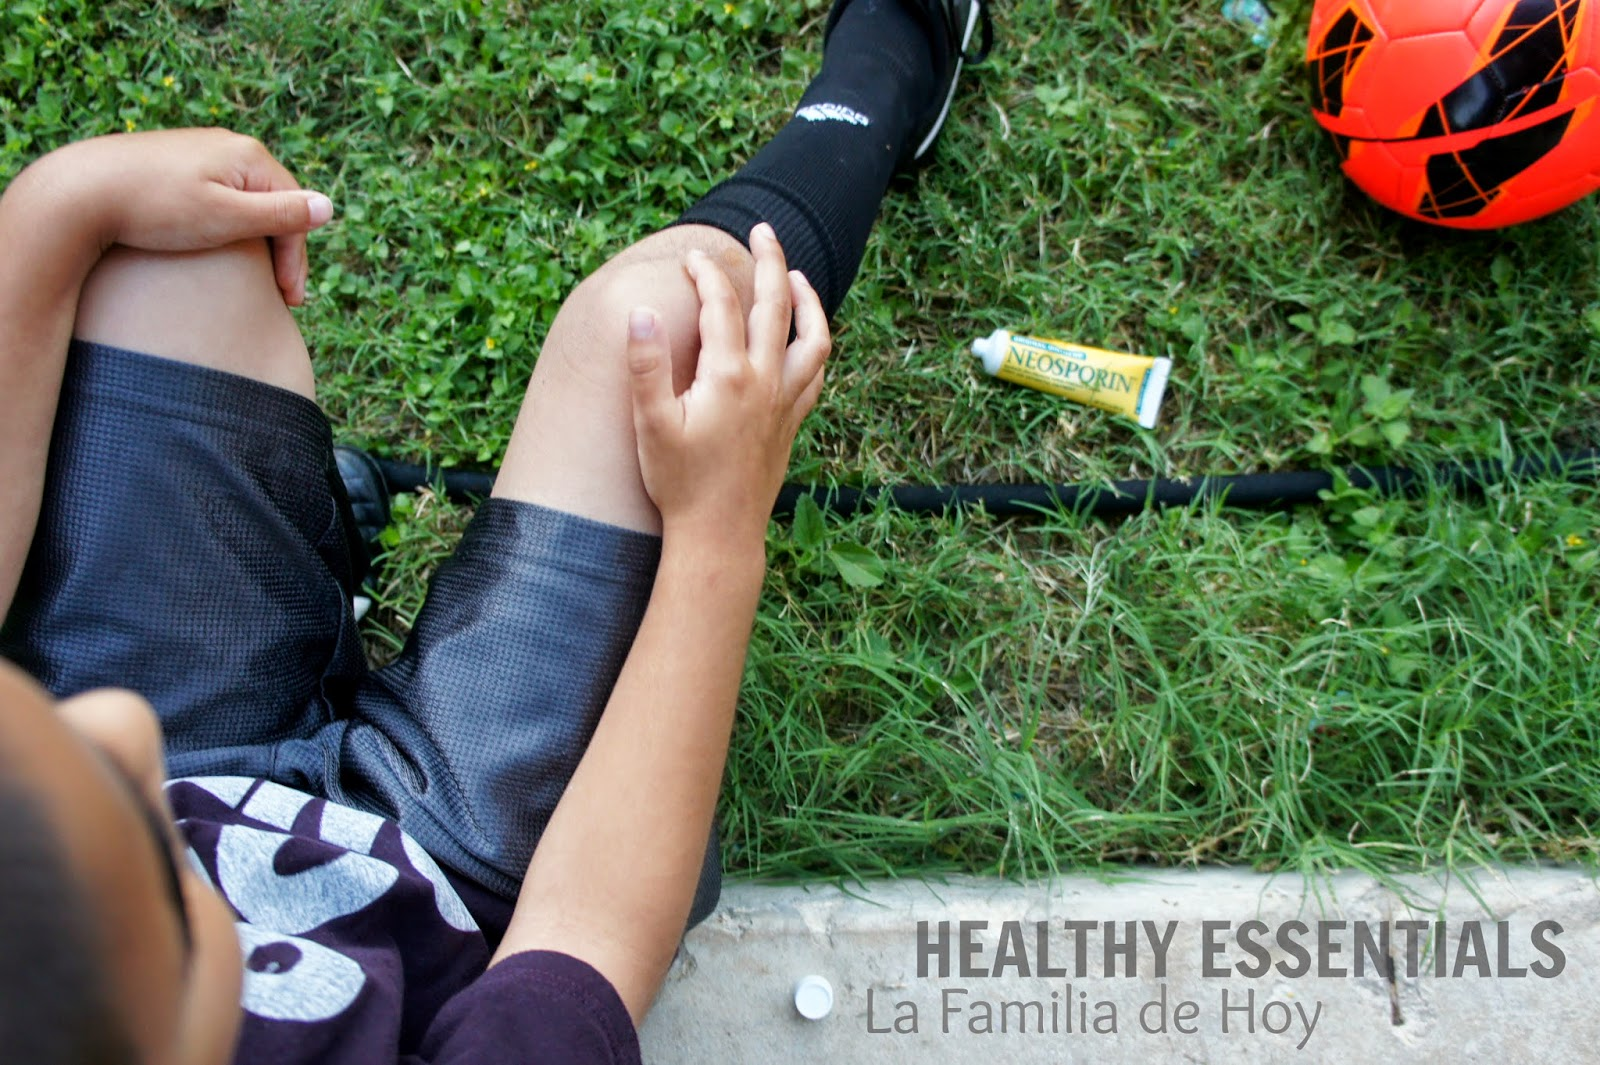 Johnson & Johnson Healthy Essentials Neosporin for #LaFamiliaDeHoy #ad